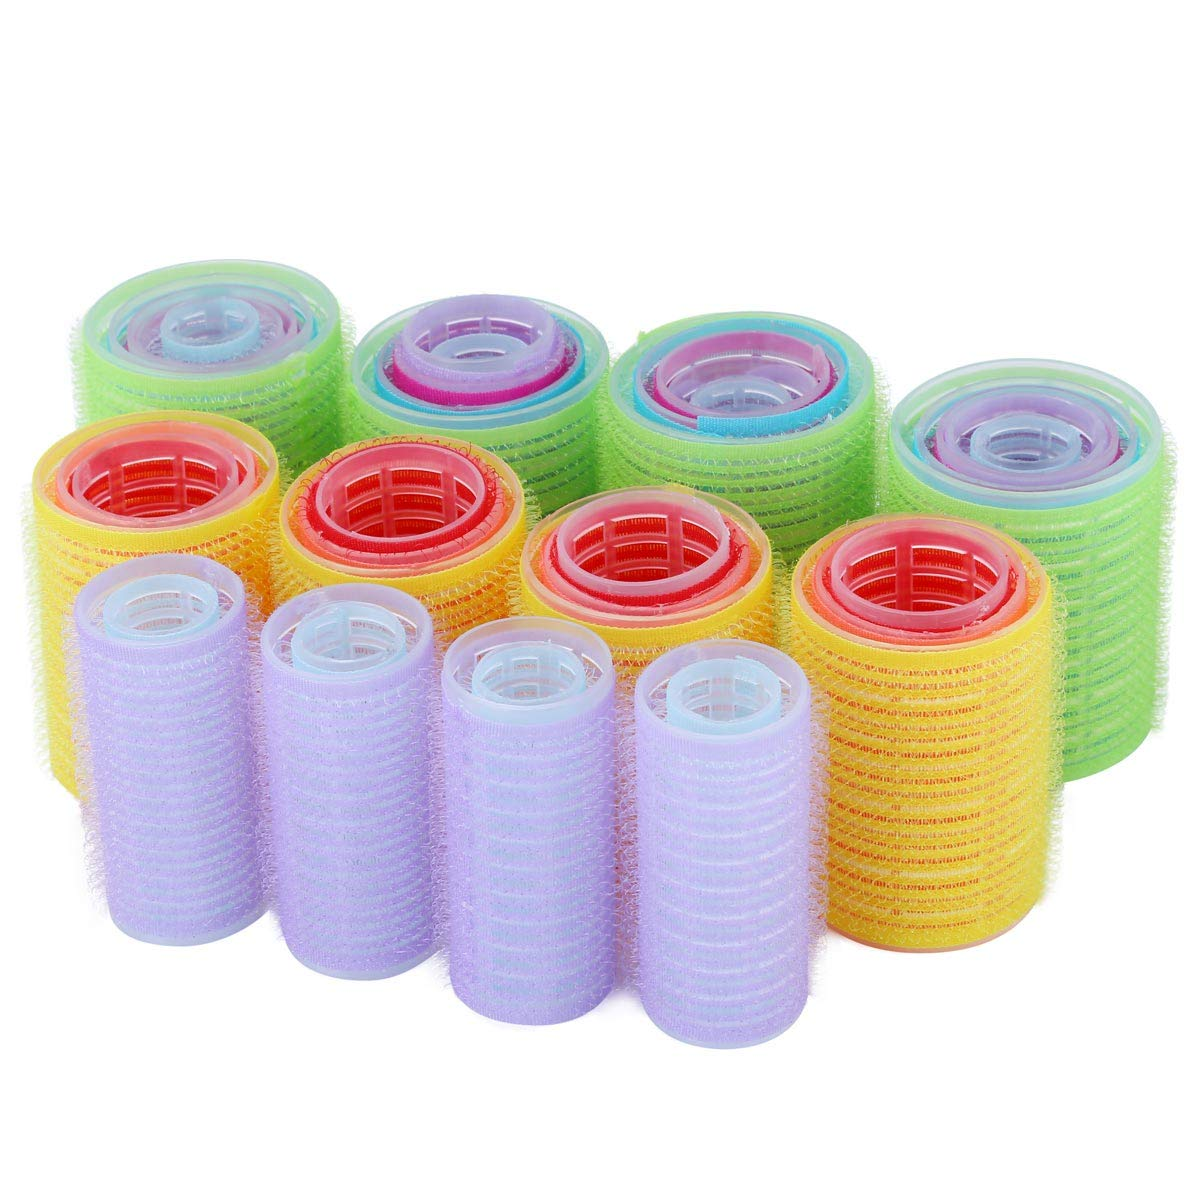 40 Pcs Plastic Hair Rollers Self Grip Hair Roll 5 Sizes Large Medium Small Hair Curler Hairdressing Curling Tools